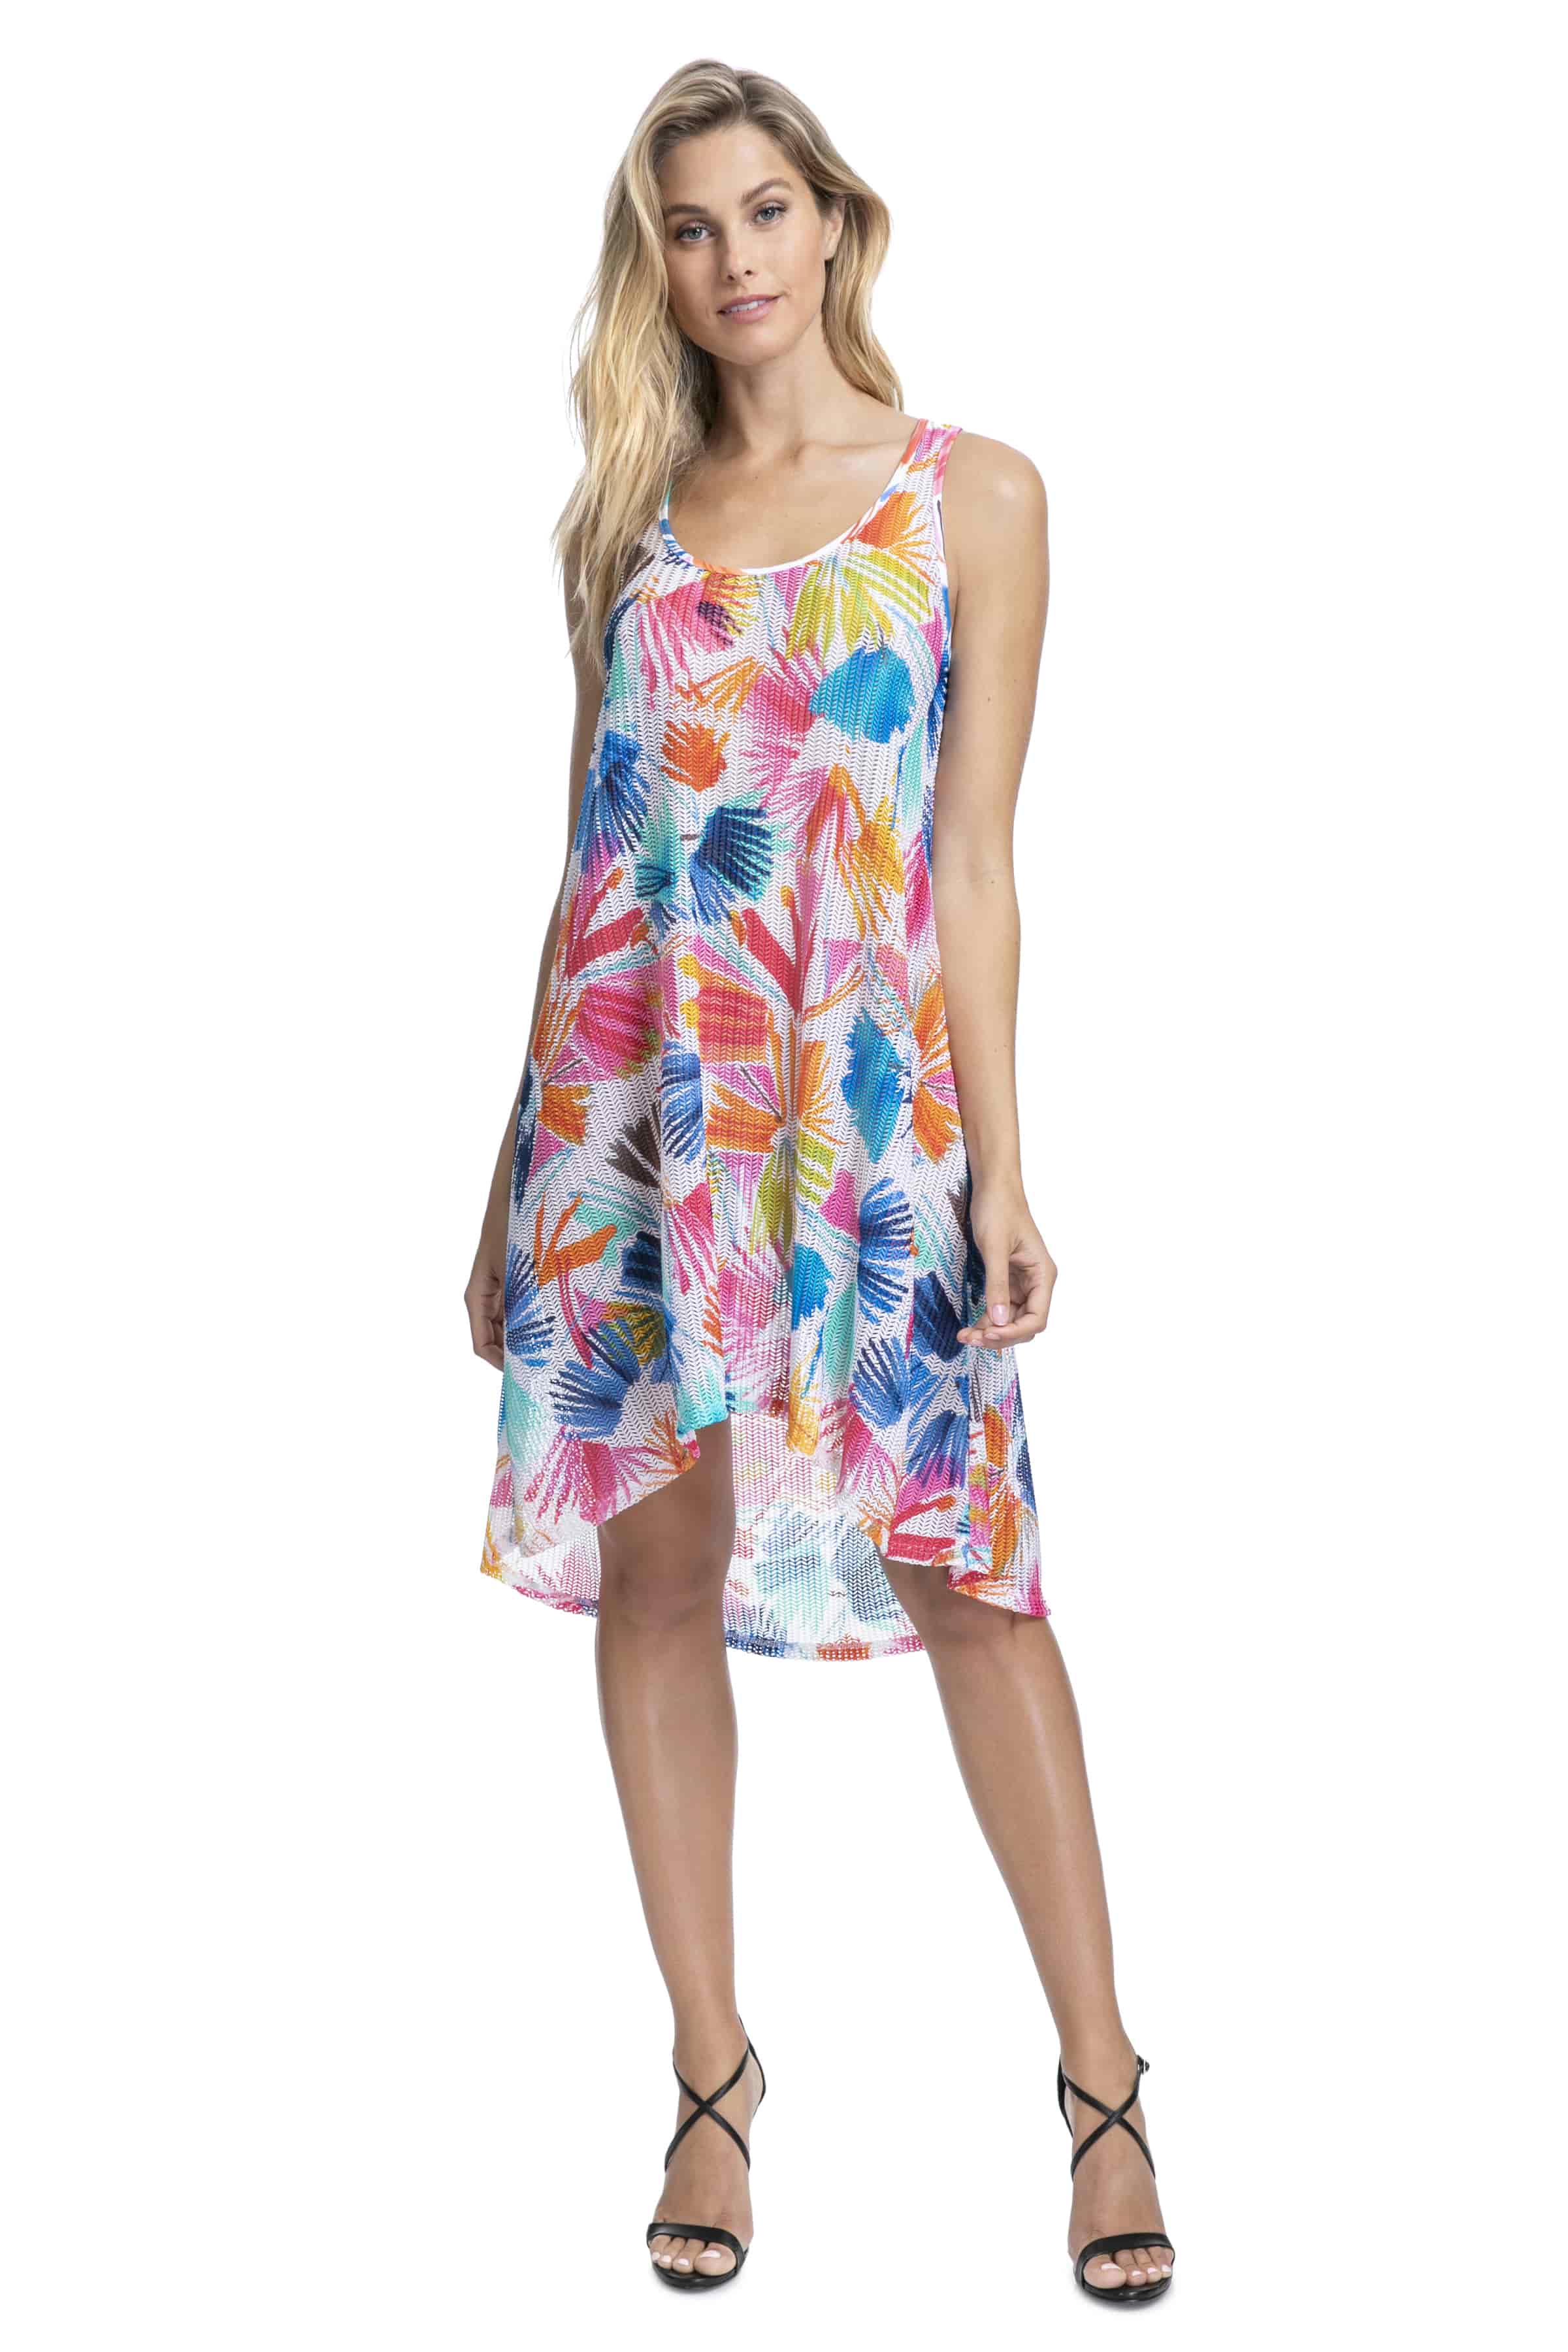 Gottex Profile Splash Mesh Dress in Multi m